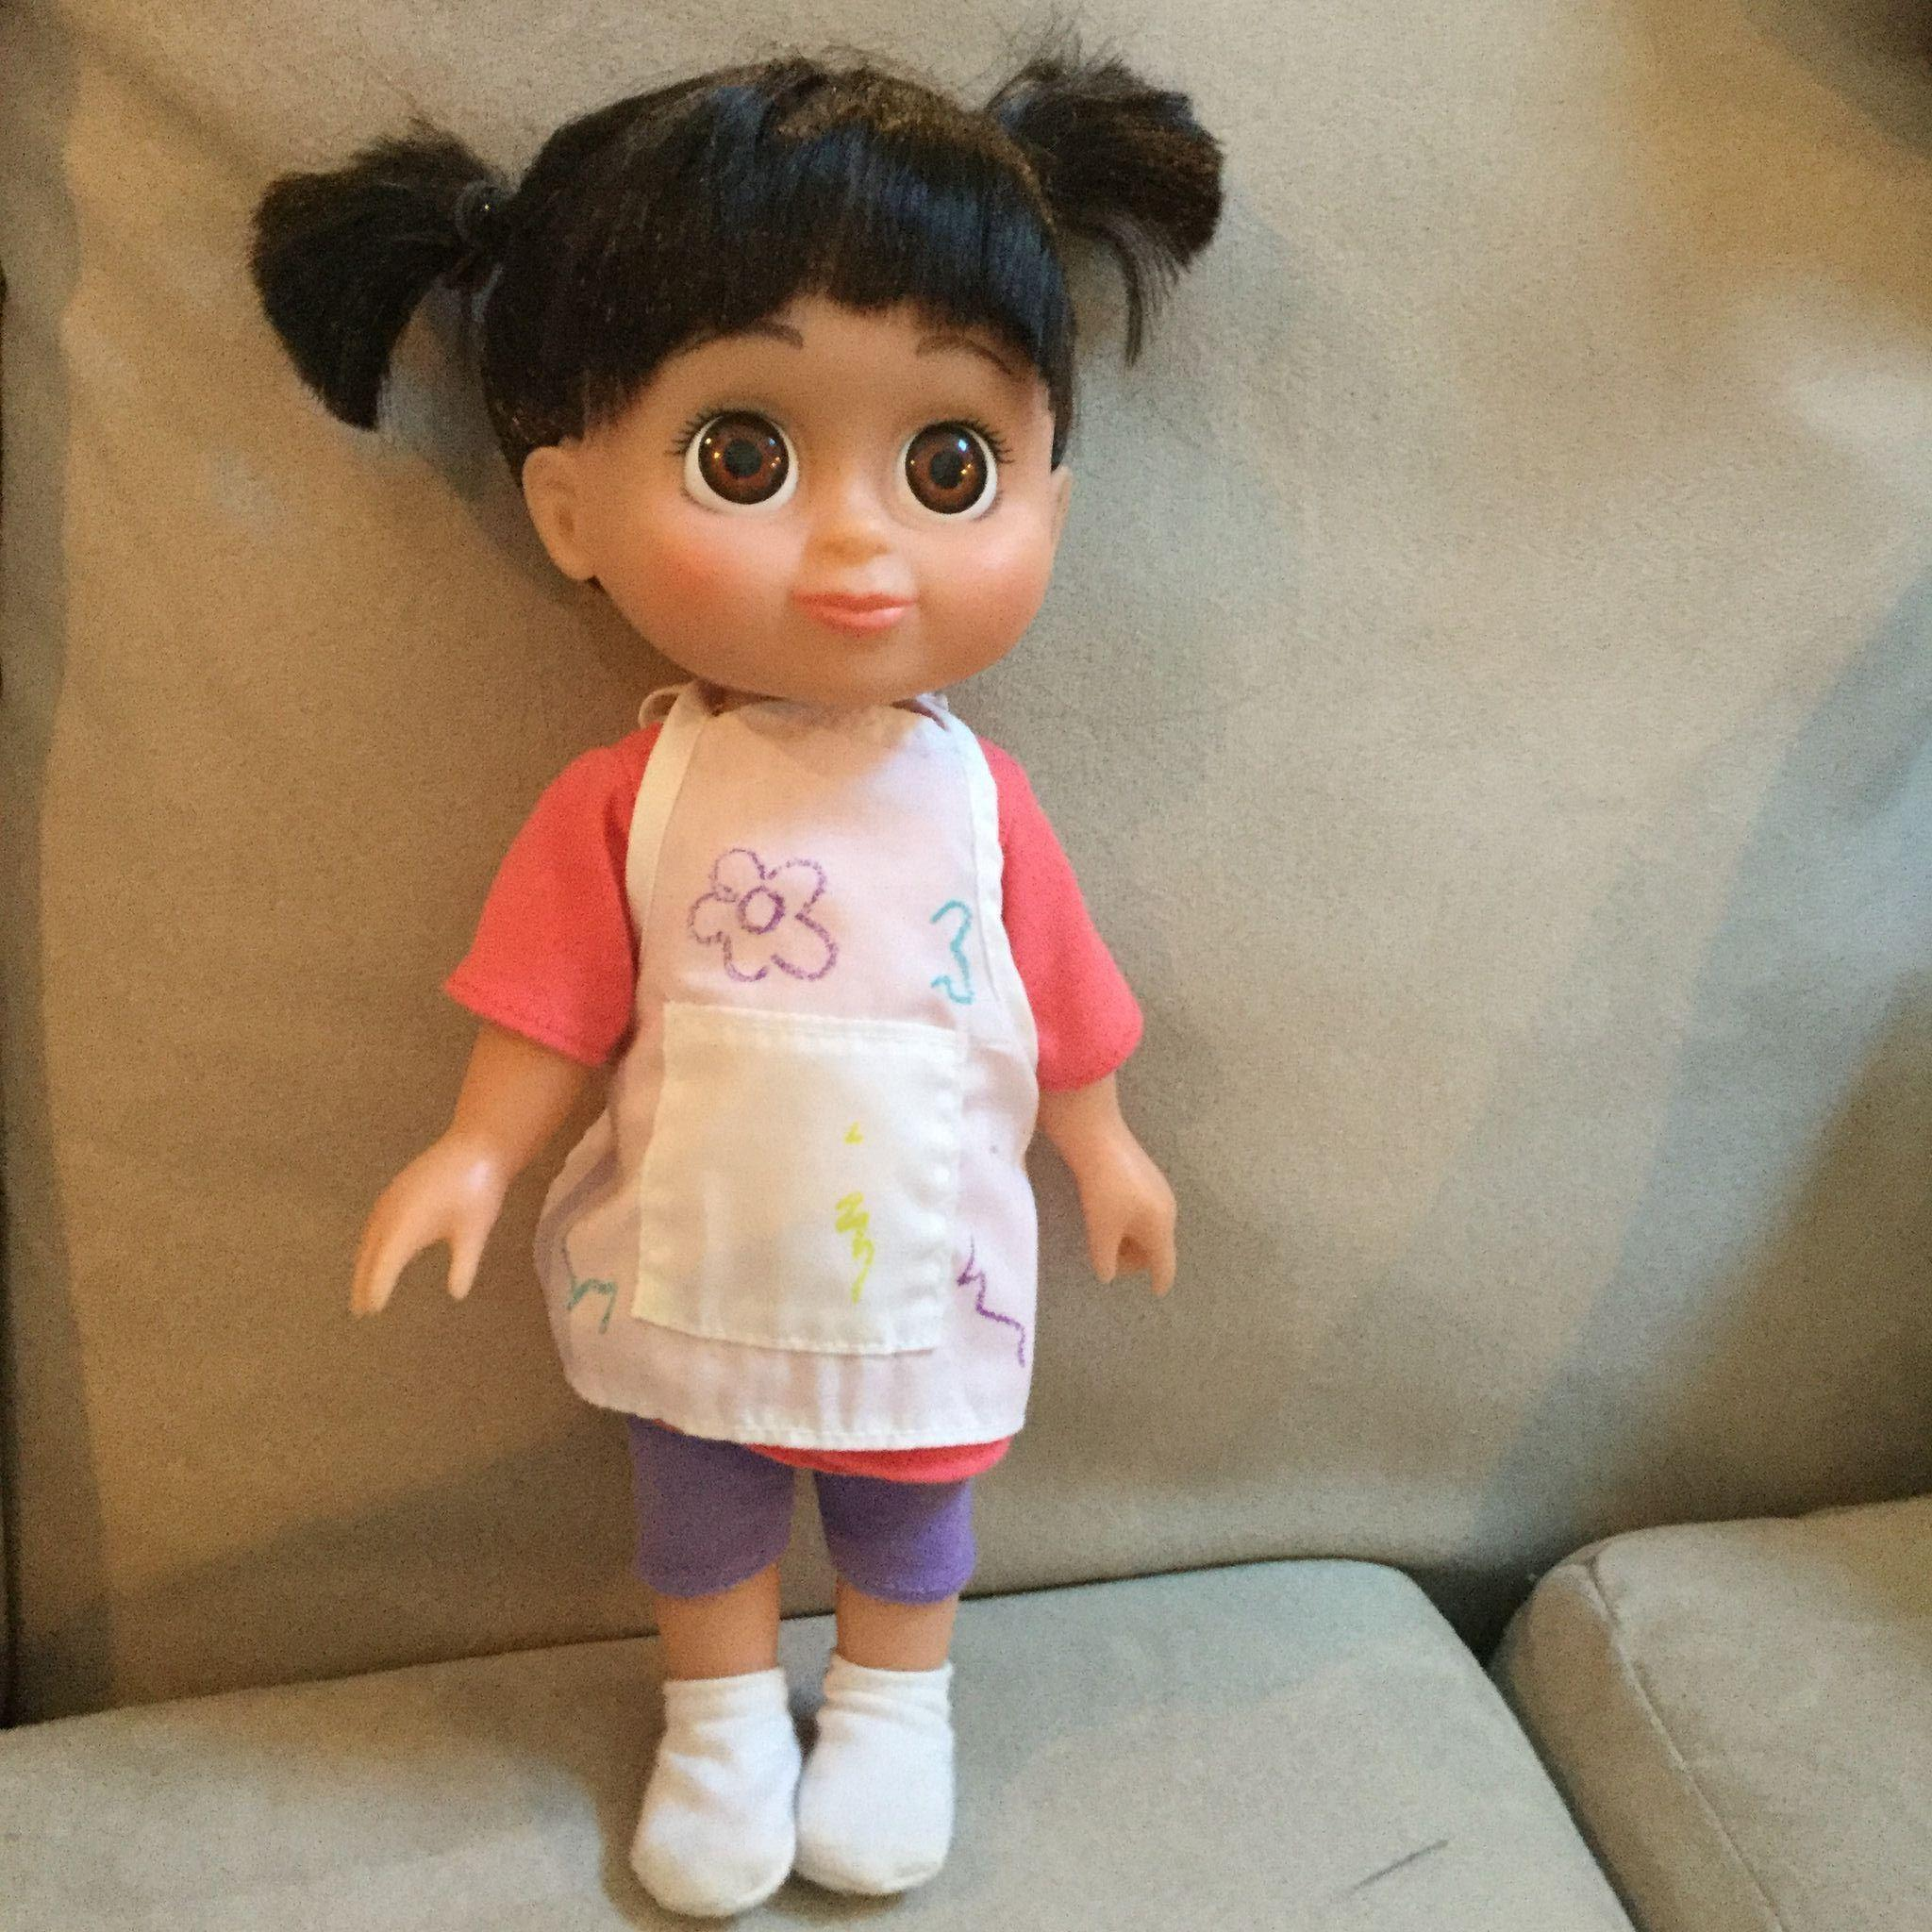 Boo from Monsters, Inc. She Talks